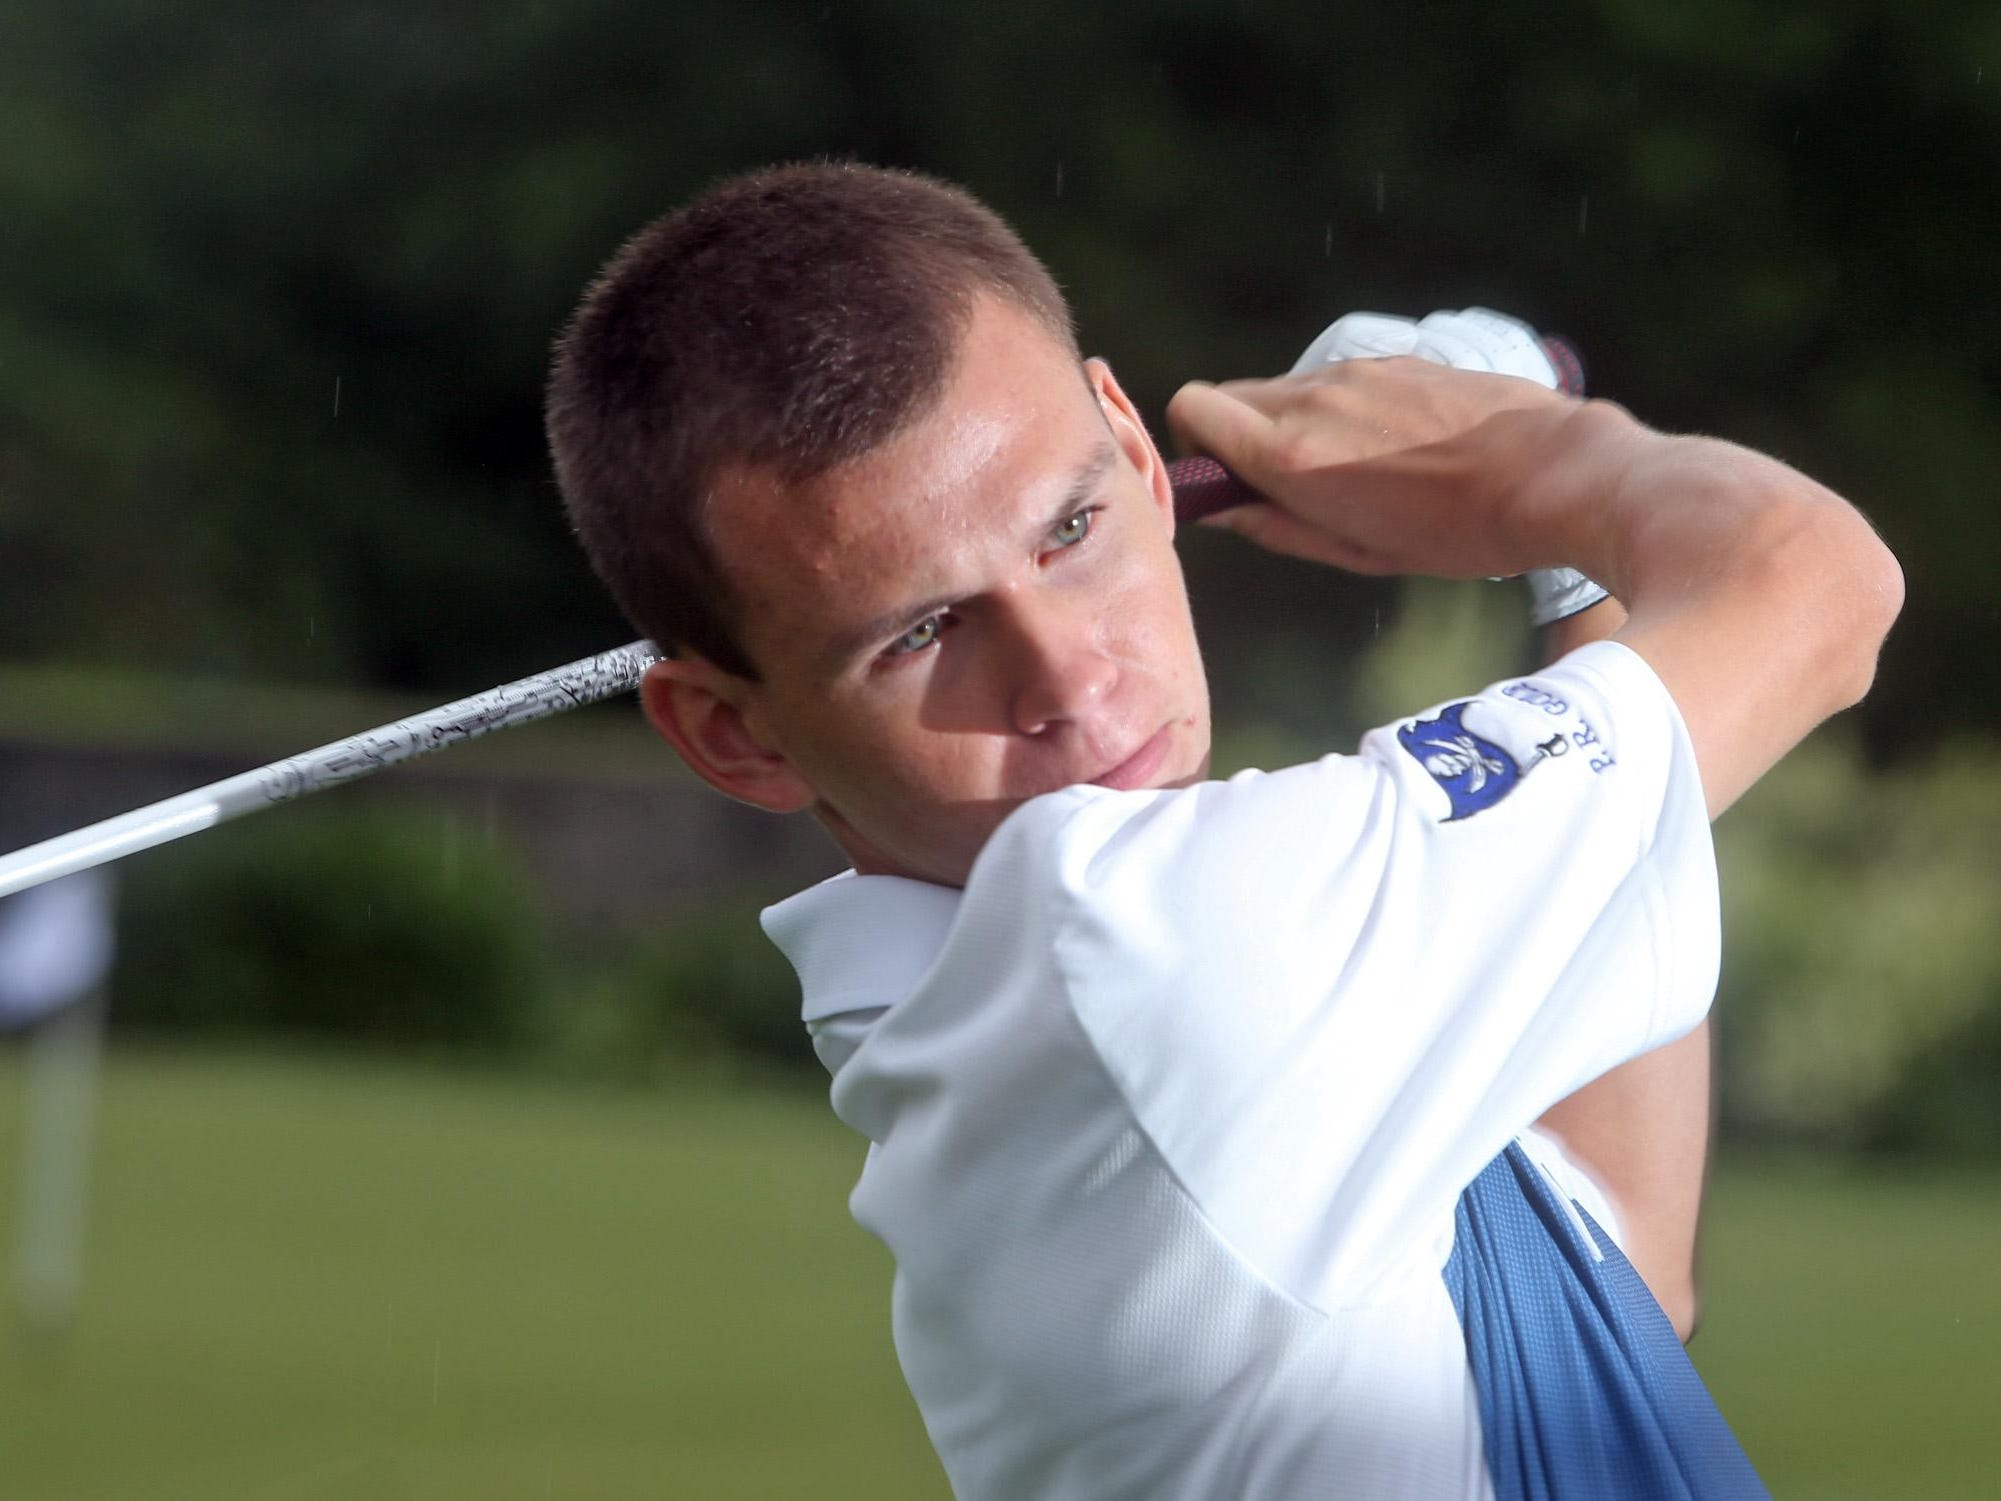 Glenn Watson, who just graduated from Pearl River High School, is the Rockland County Golfer of the year. He was photographed June 27, 2015 at Rockland Country Club.